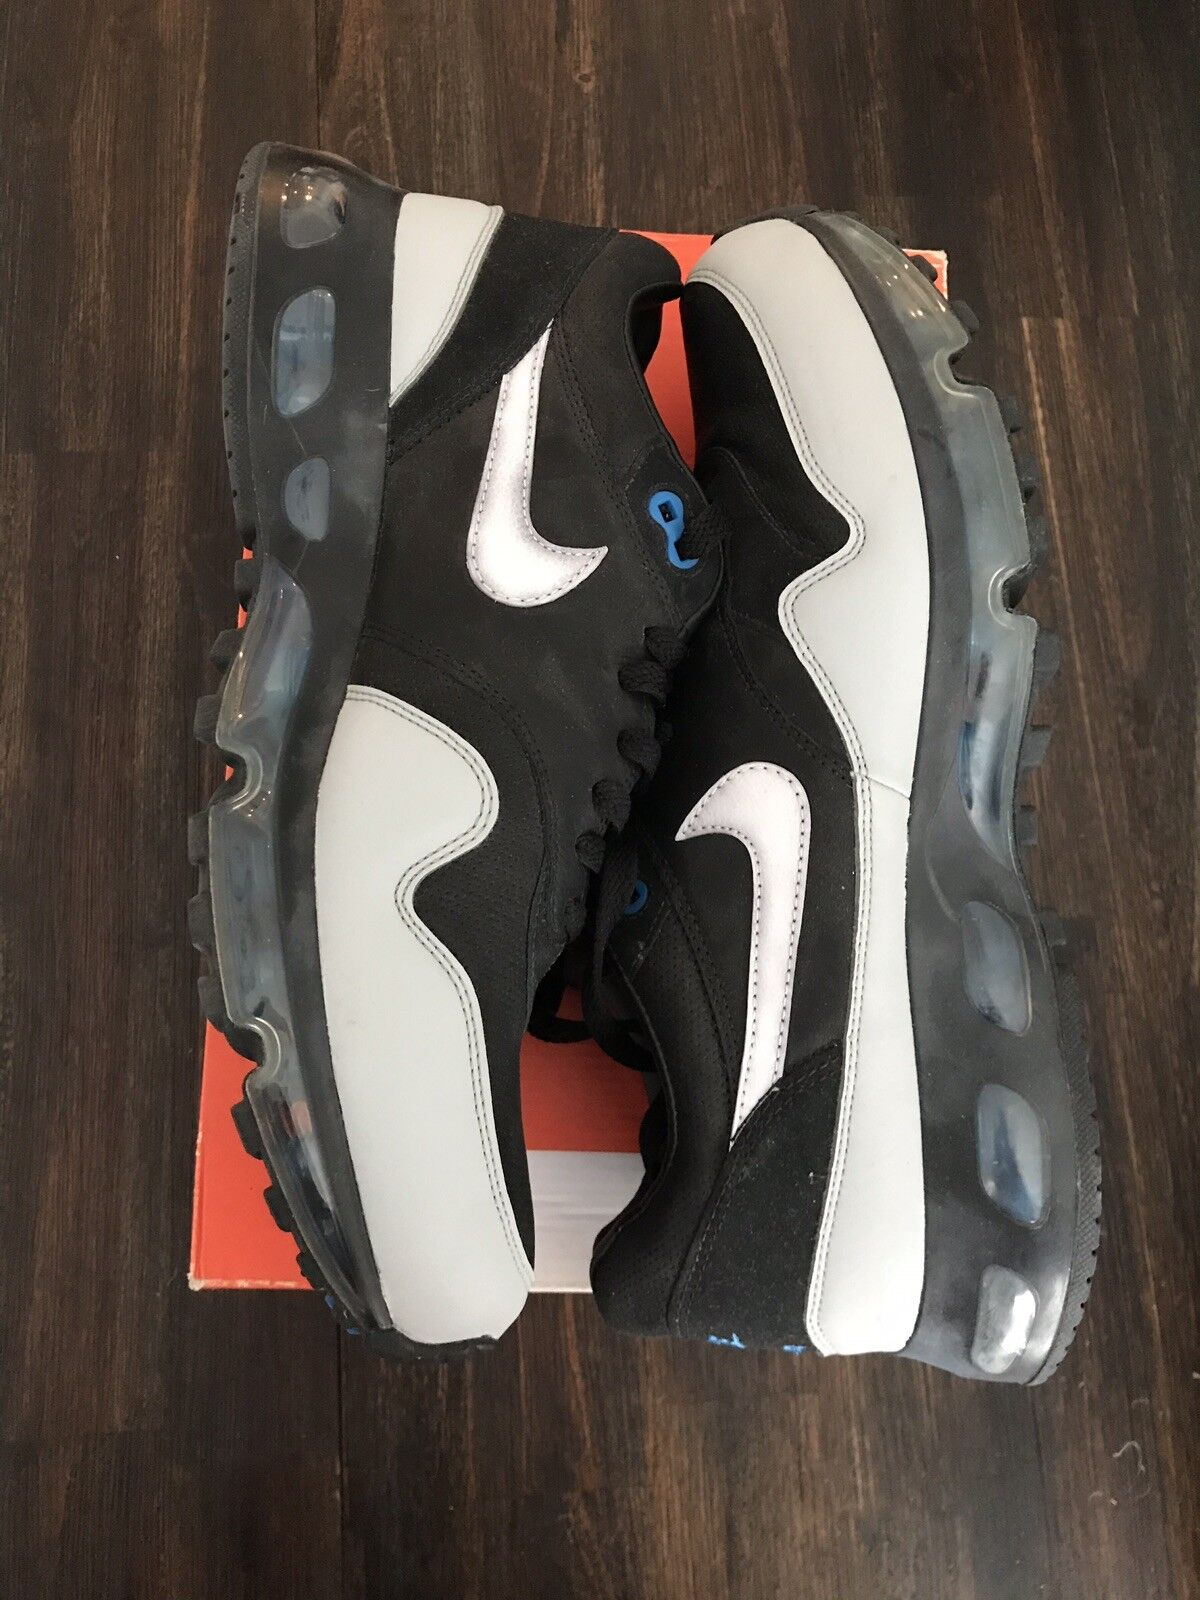 Nike Air Max 1 360 LE Black Leather Reflective Silver bluee 13 318510-011 Rare